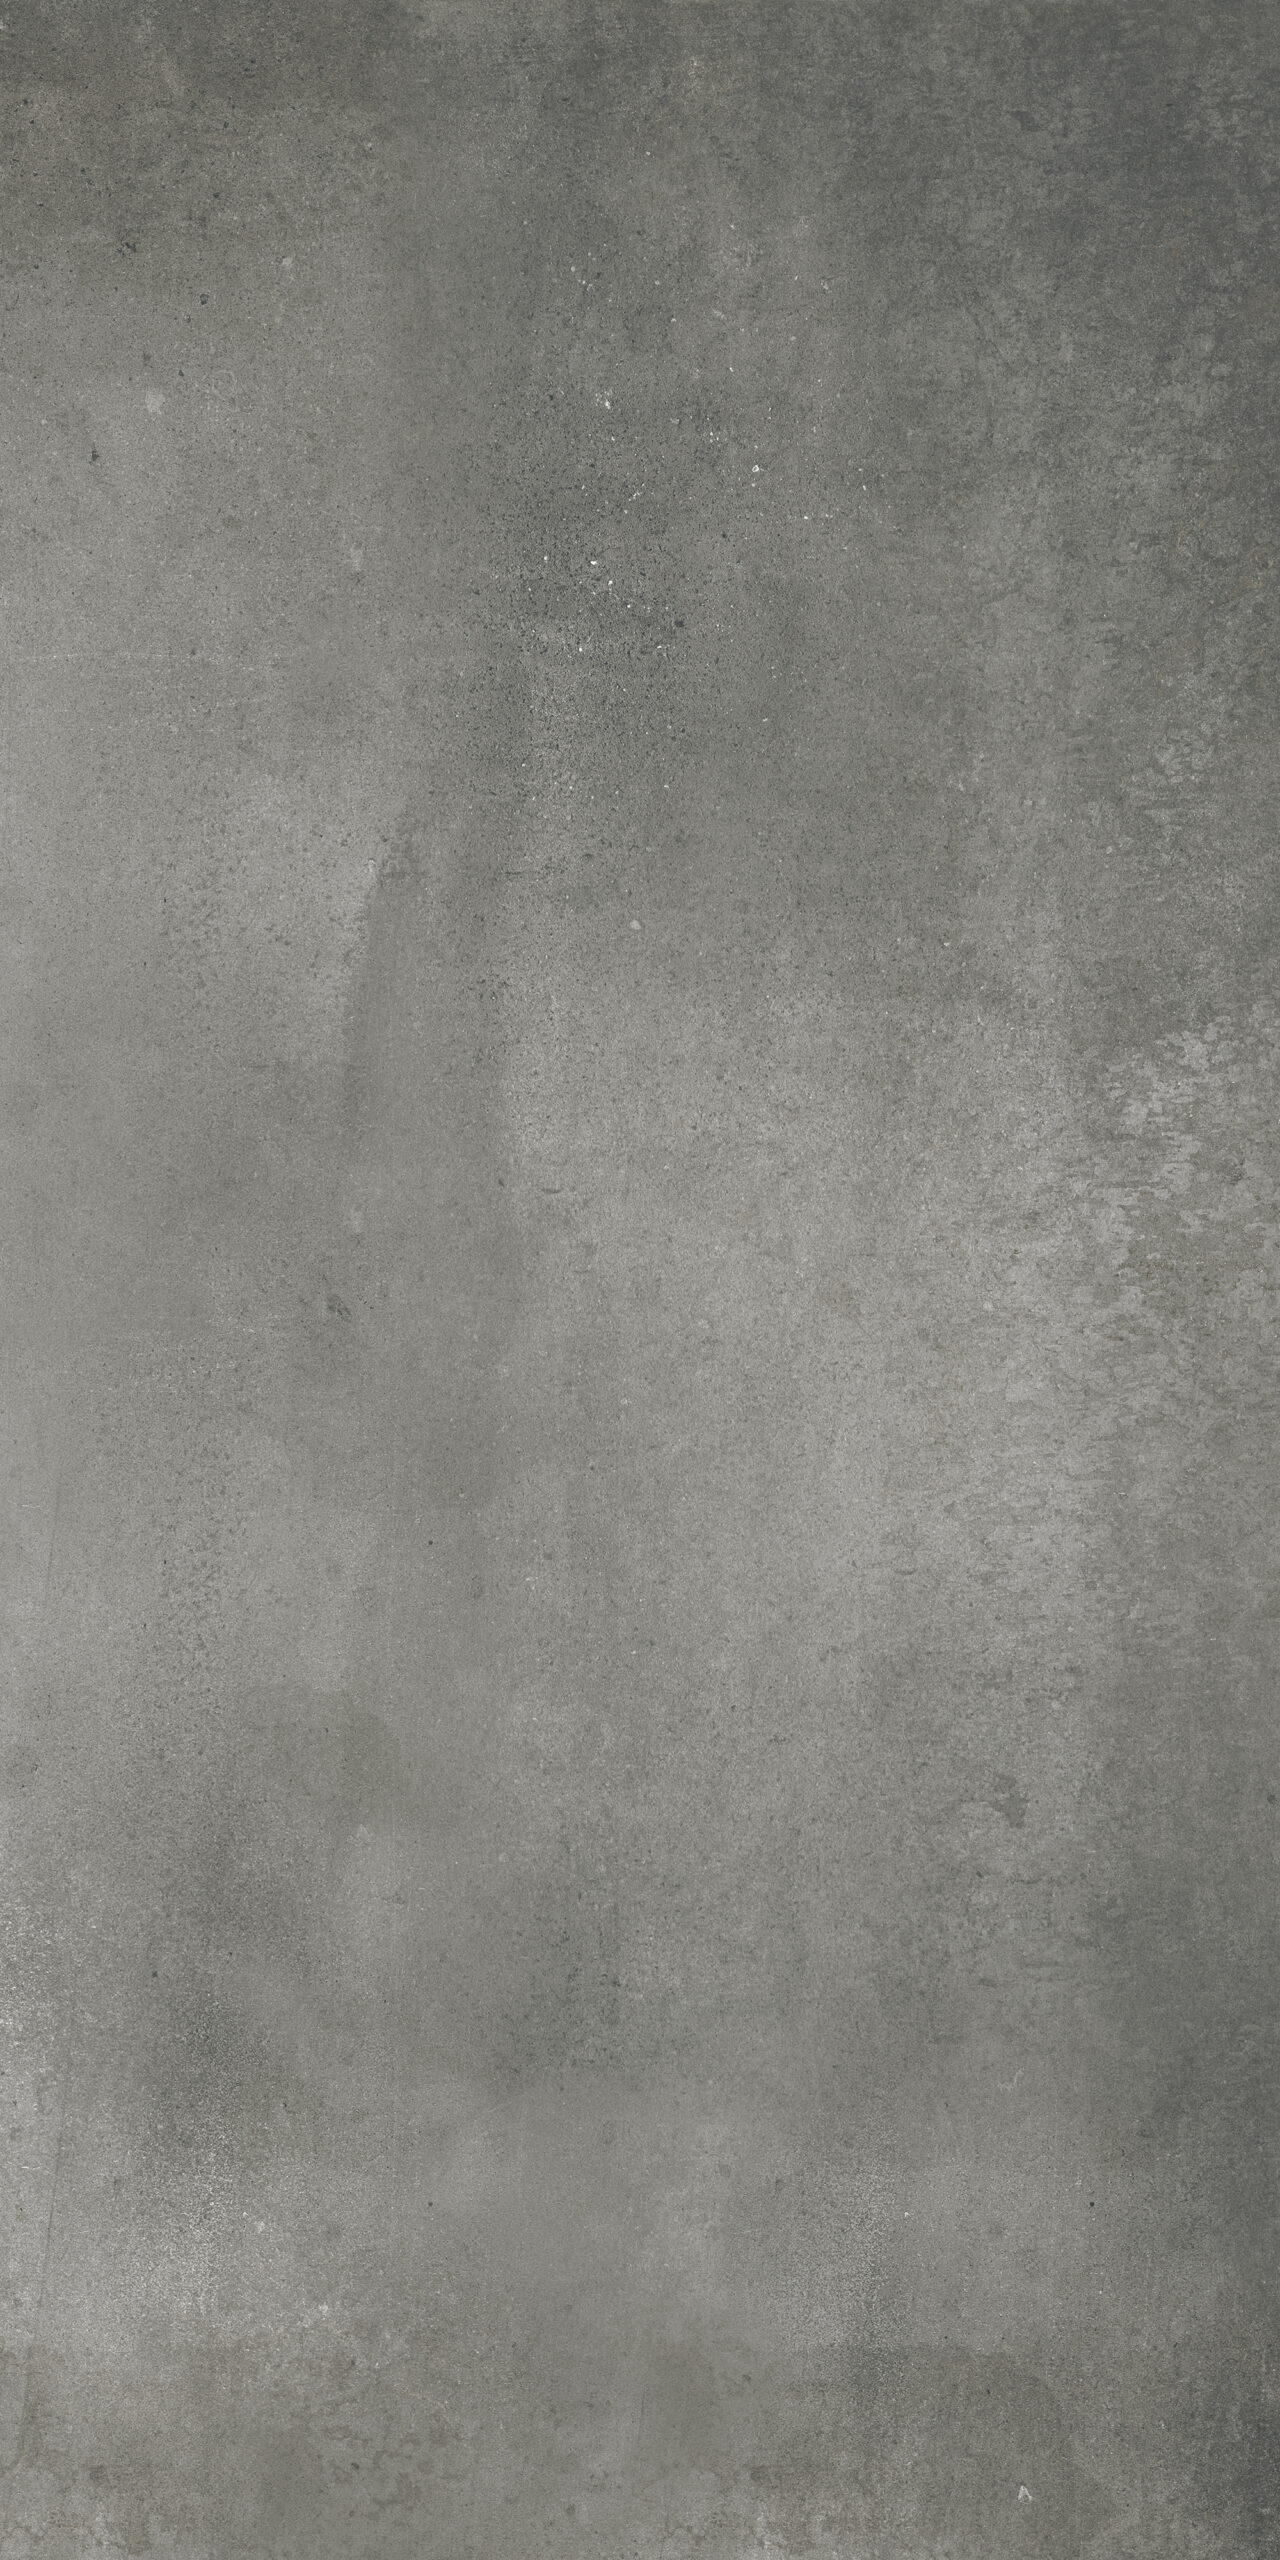 65 529 16x32 Ceraforge Titanium HD Rectified Porcelain Tile scaled